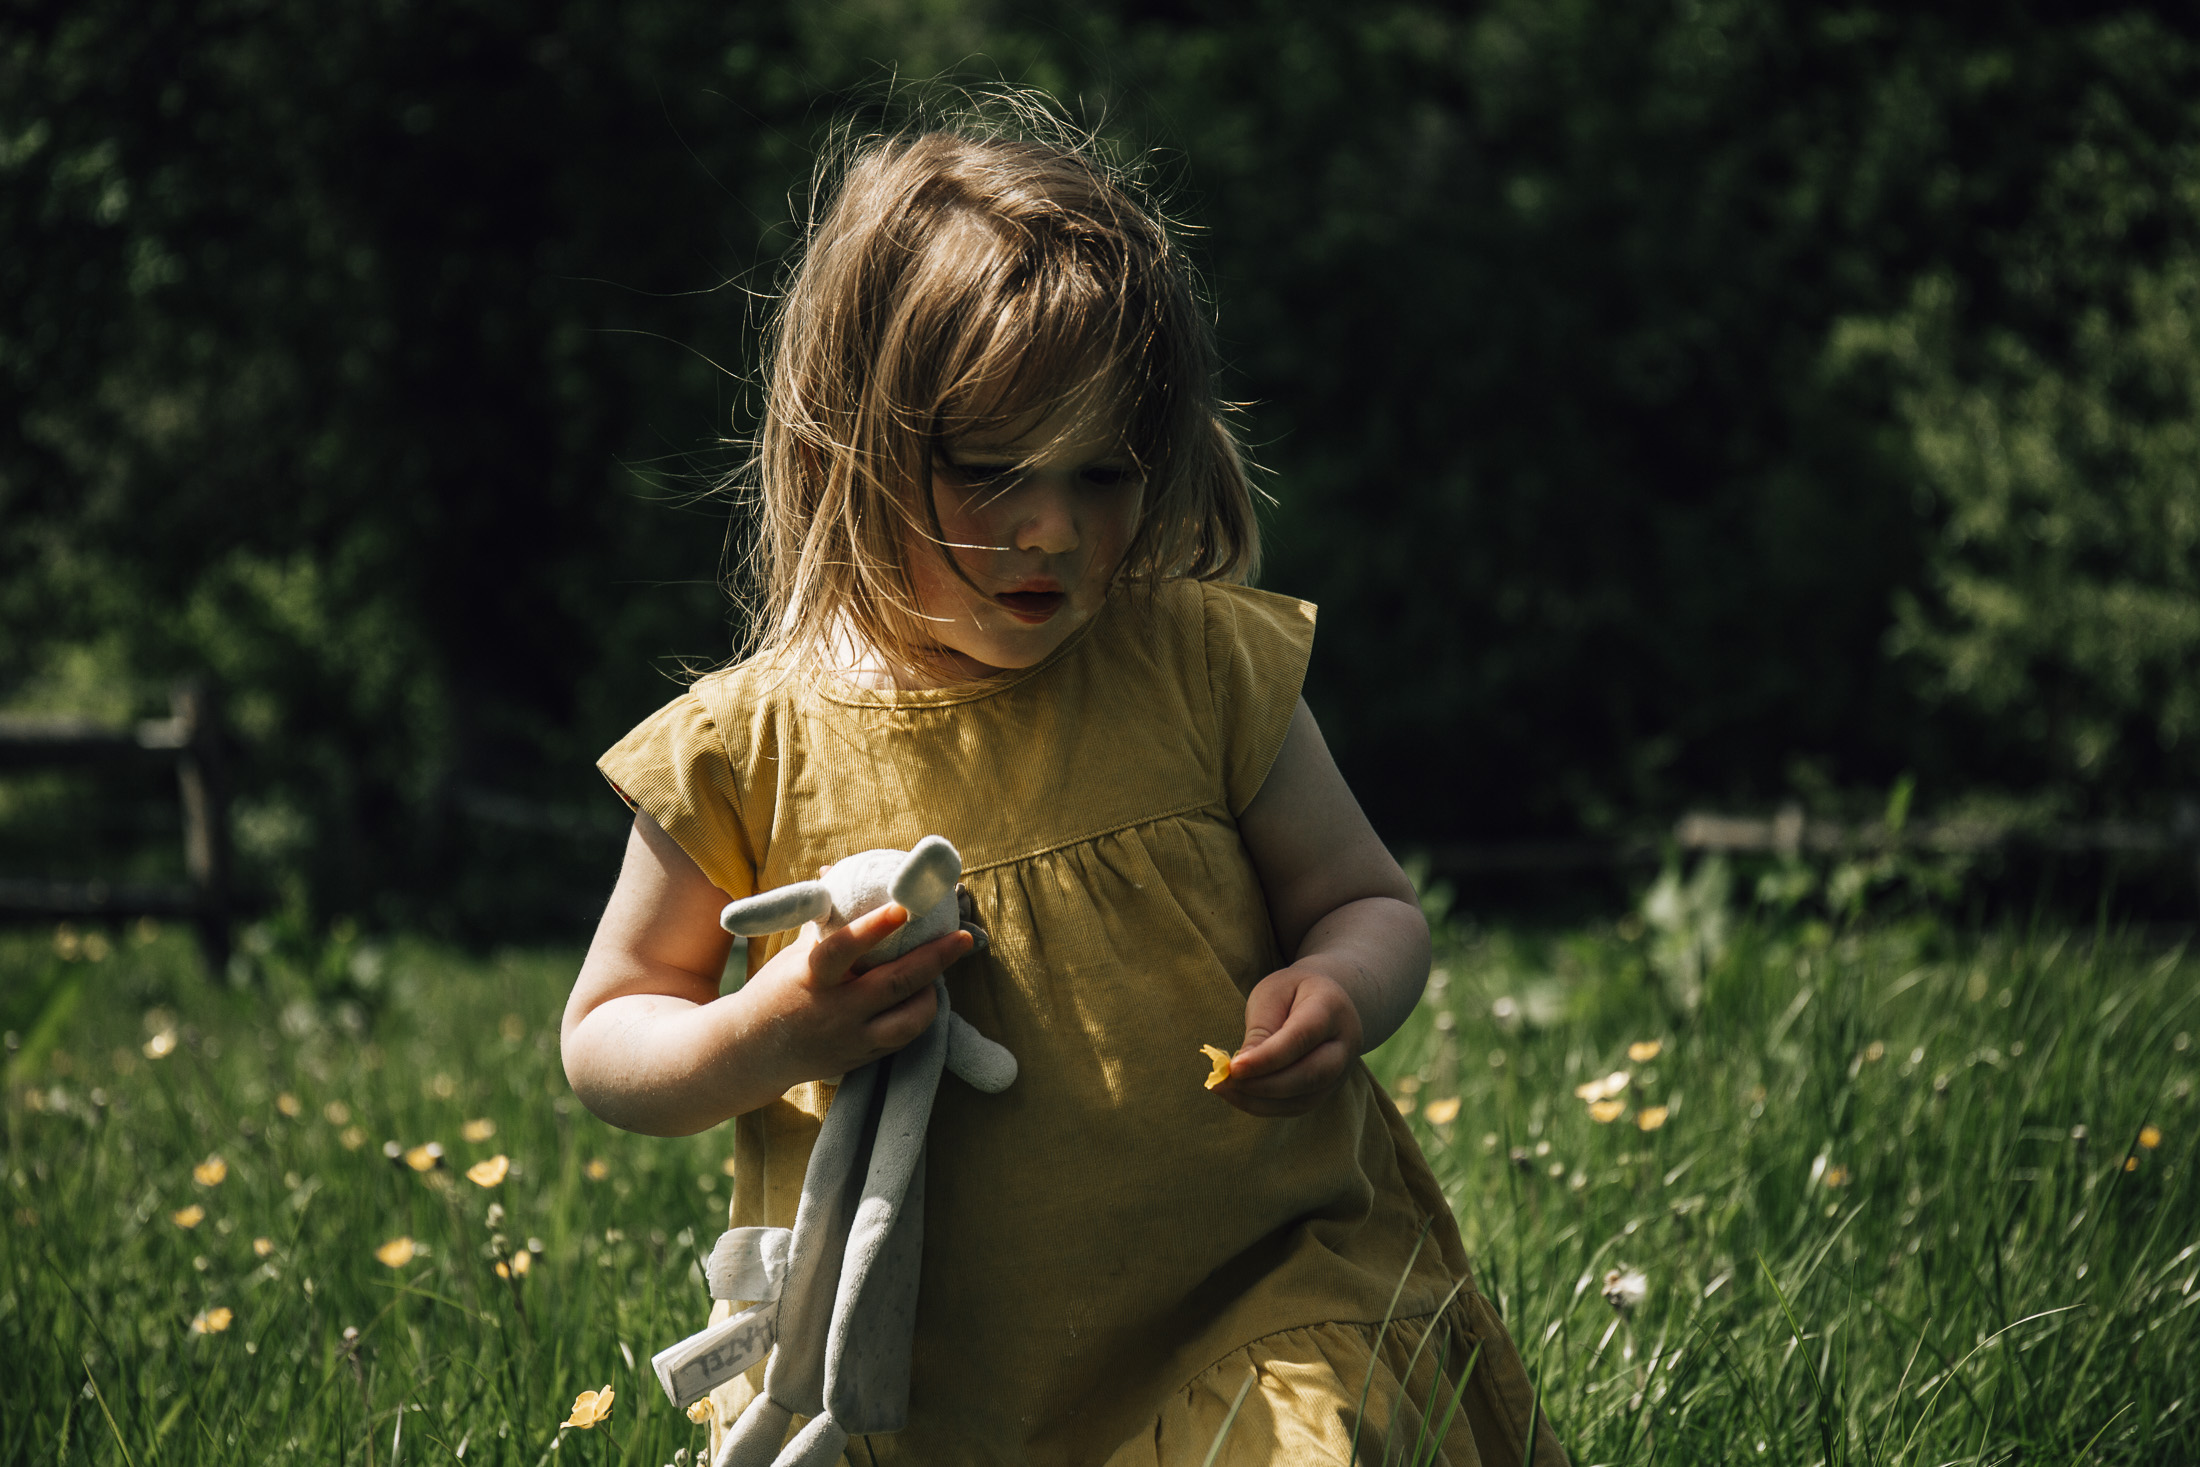 Toddler walking through field in summer